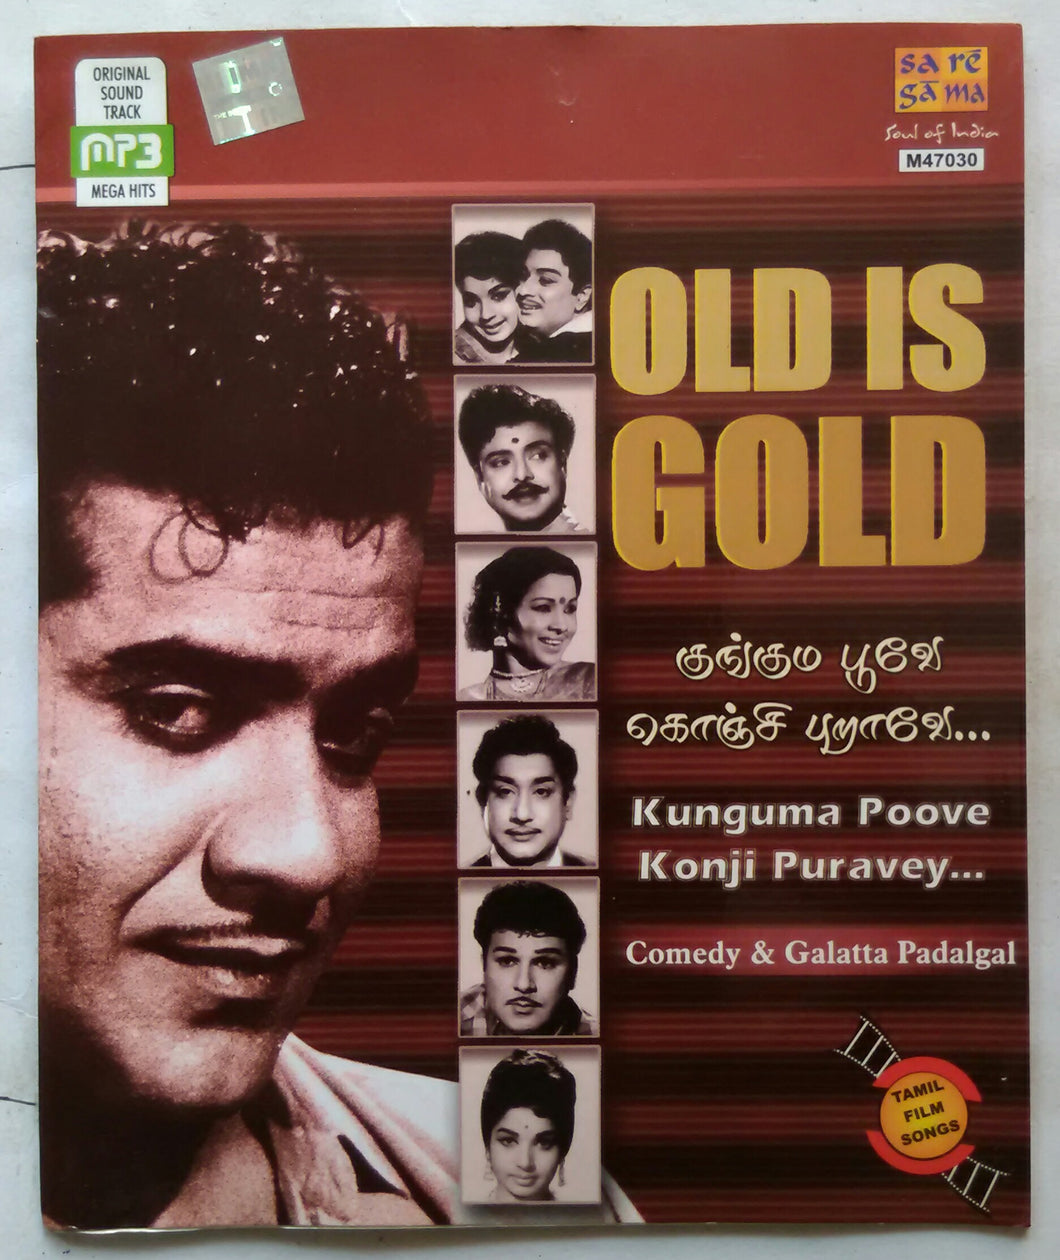 Oid Is Gold ( Kunguma Poove Konji Purave ) Comedy & Galatta Padalgal Tamil Film Songs  MP3il